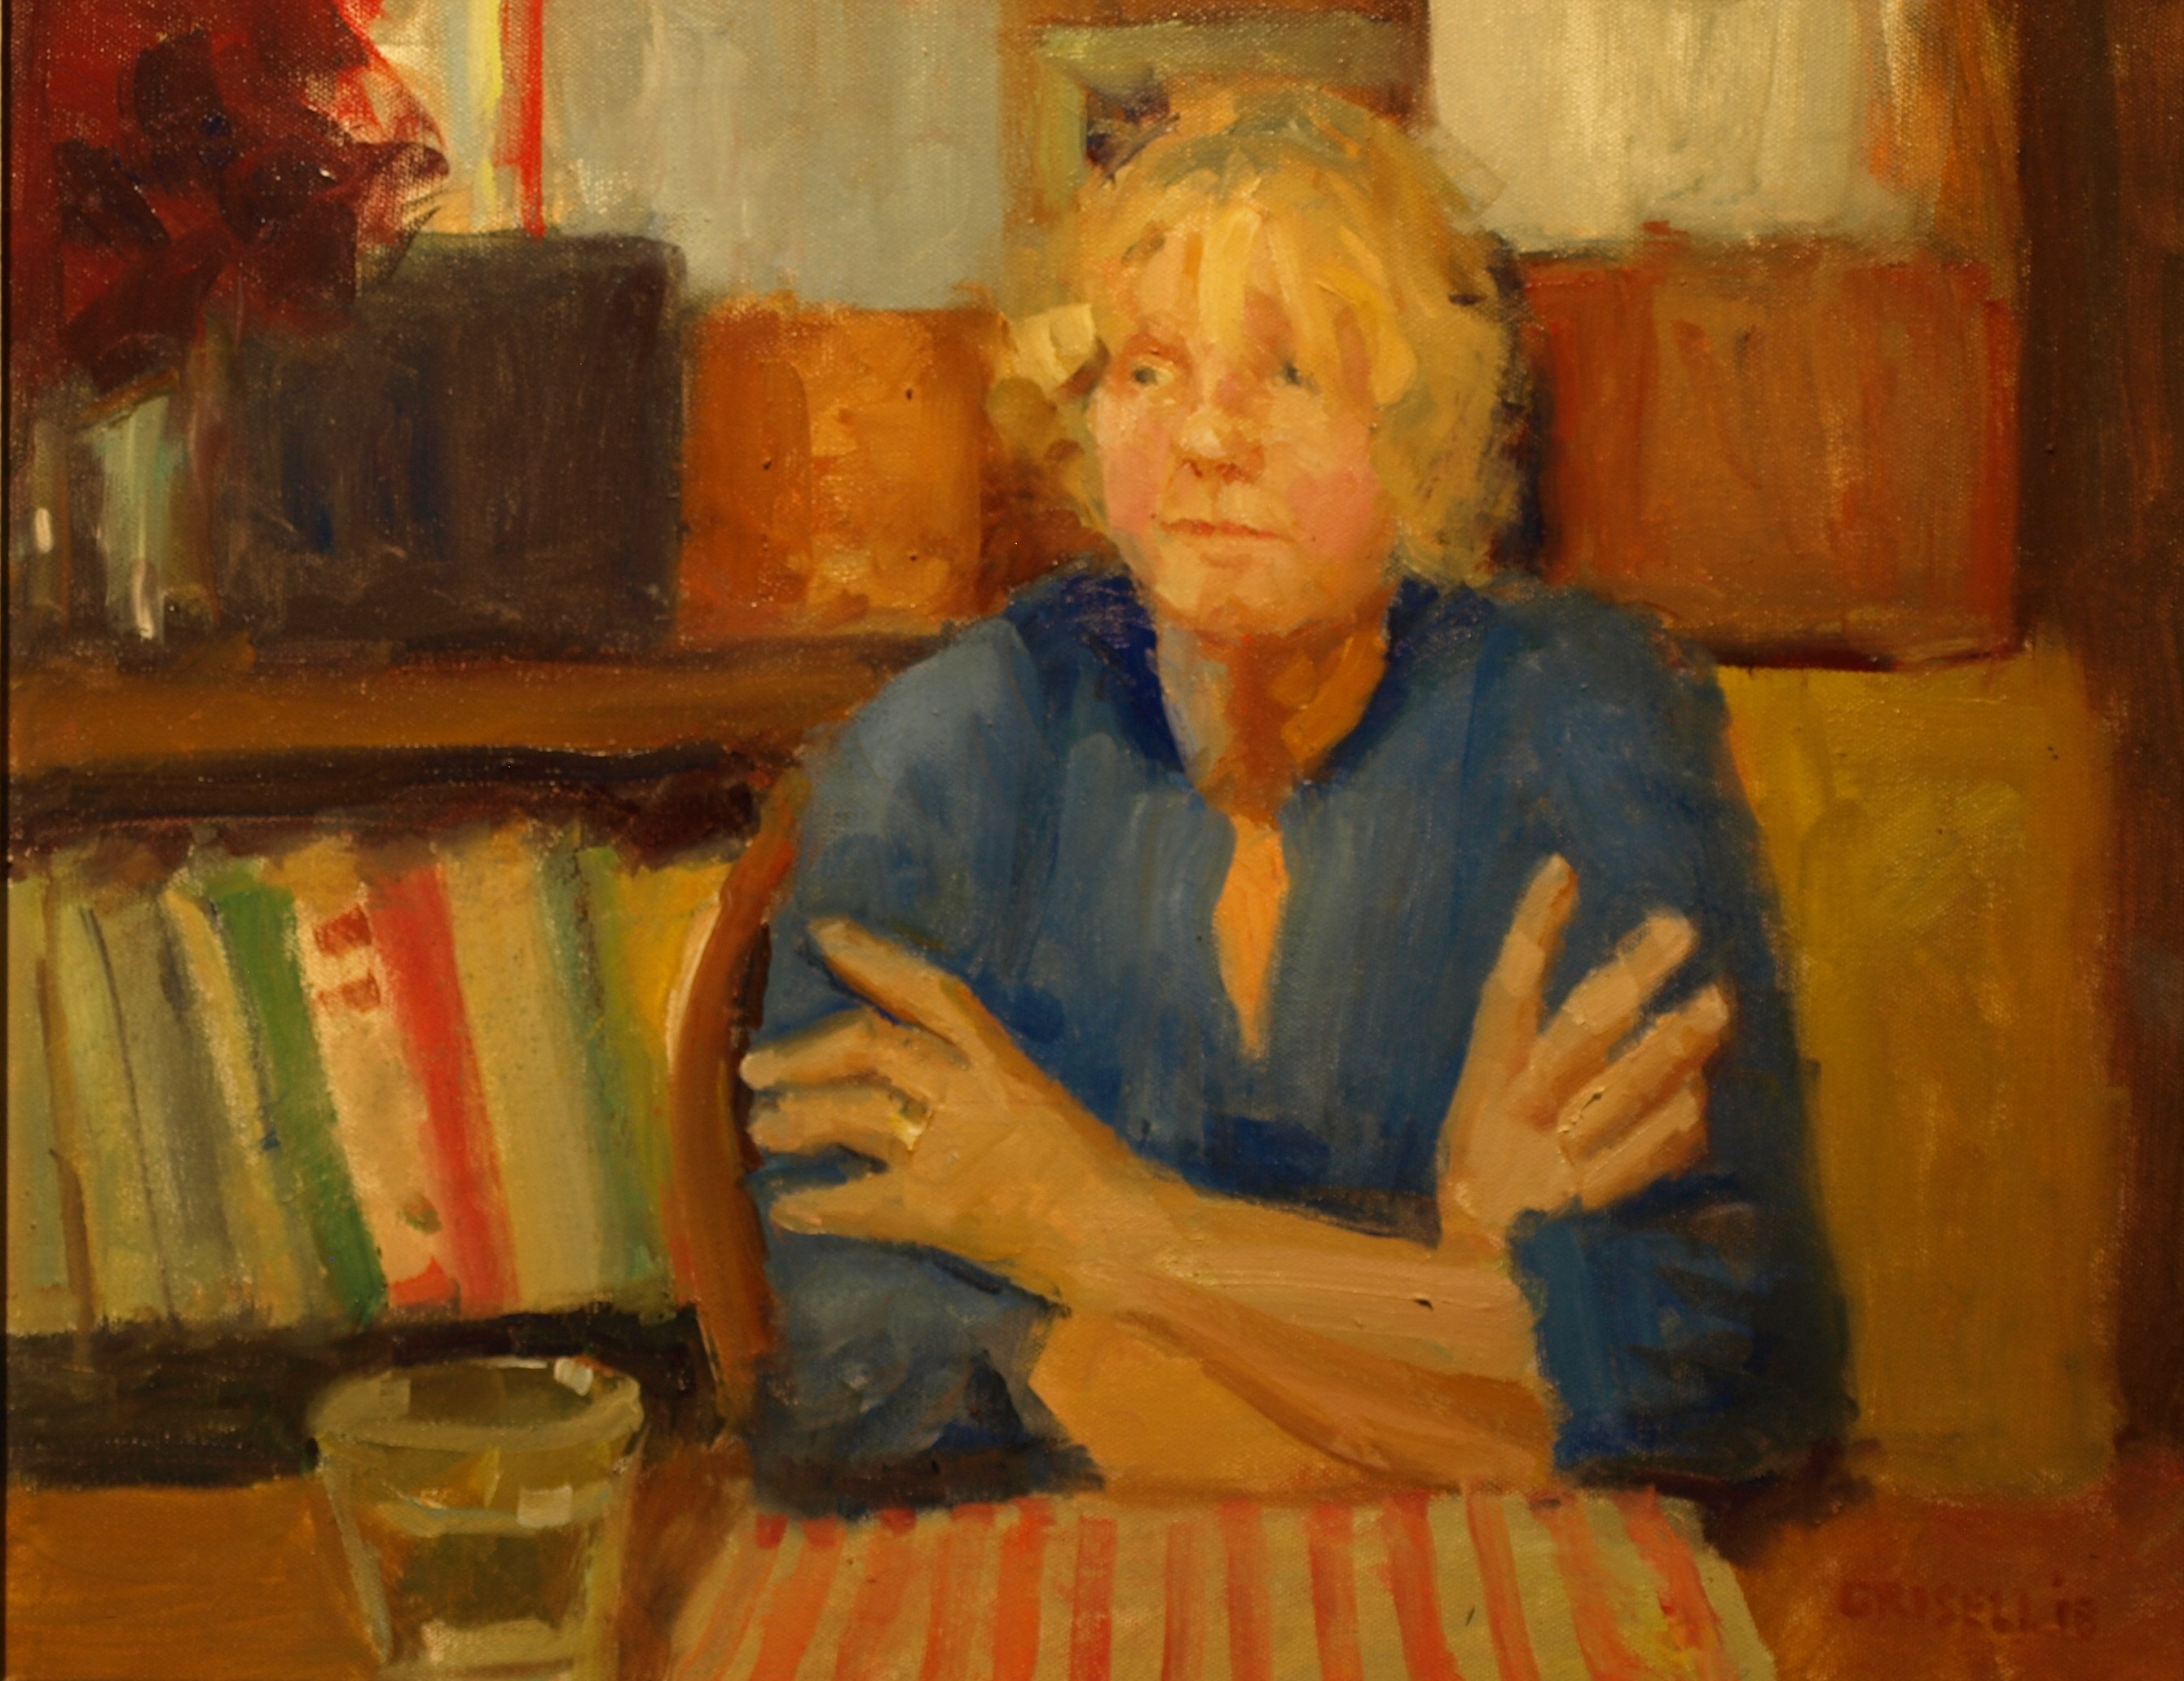 Margery's Visit, Oil on Canvas, 16 x 20 Inches, by Susan Grisell, $550